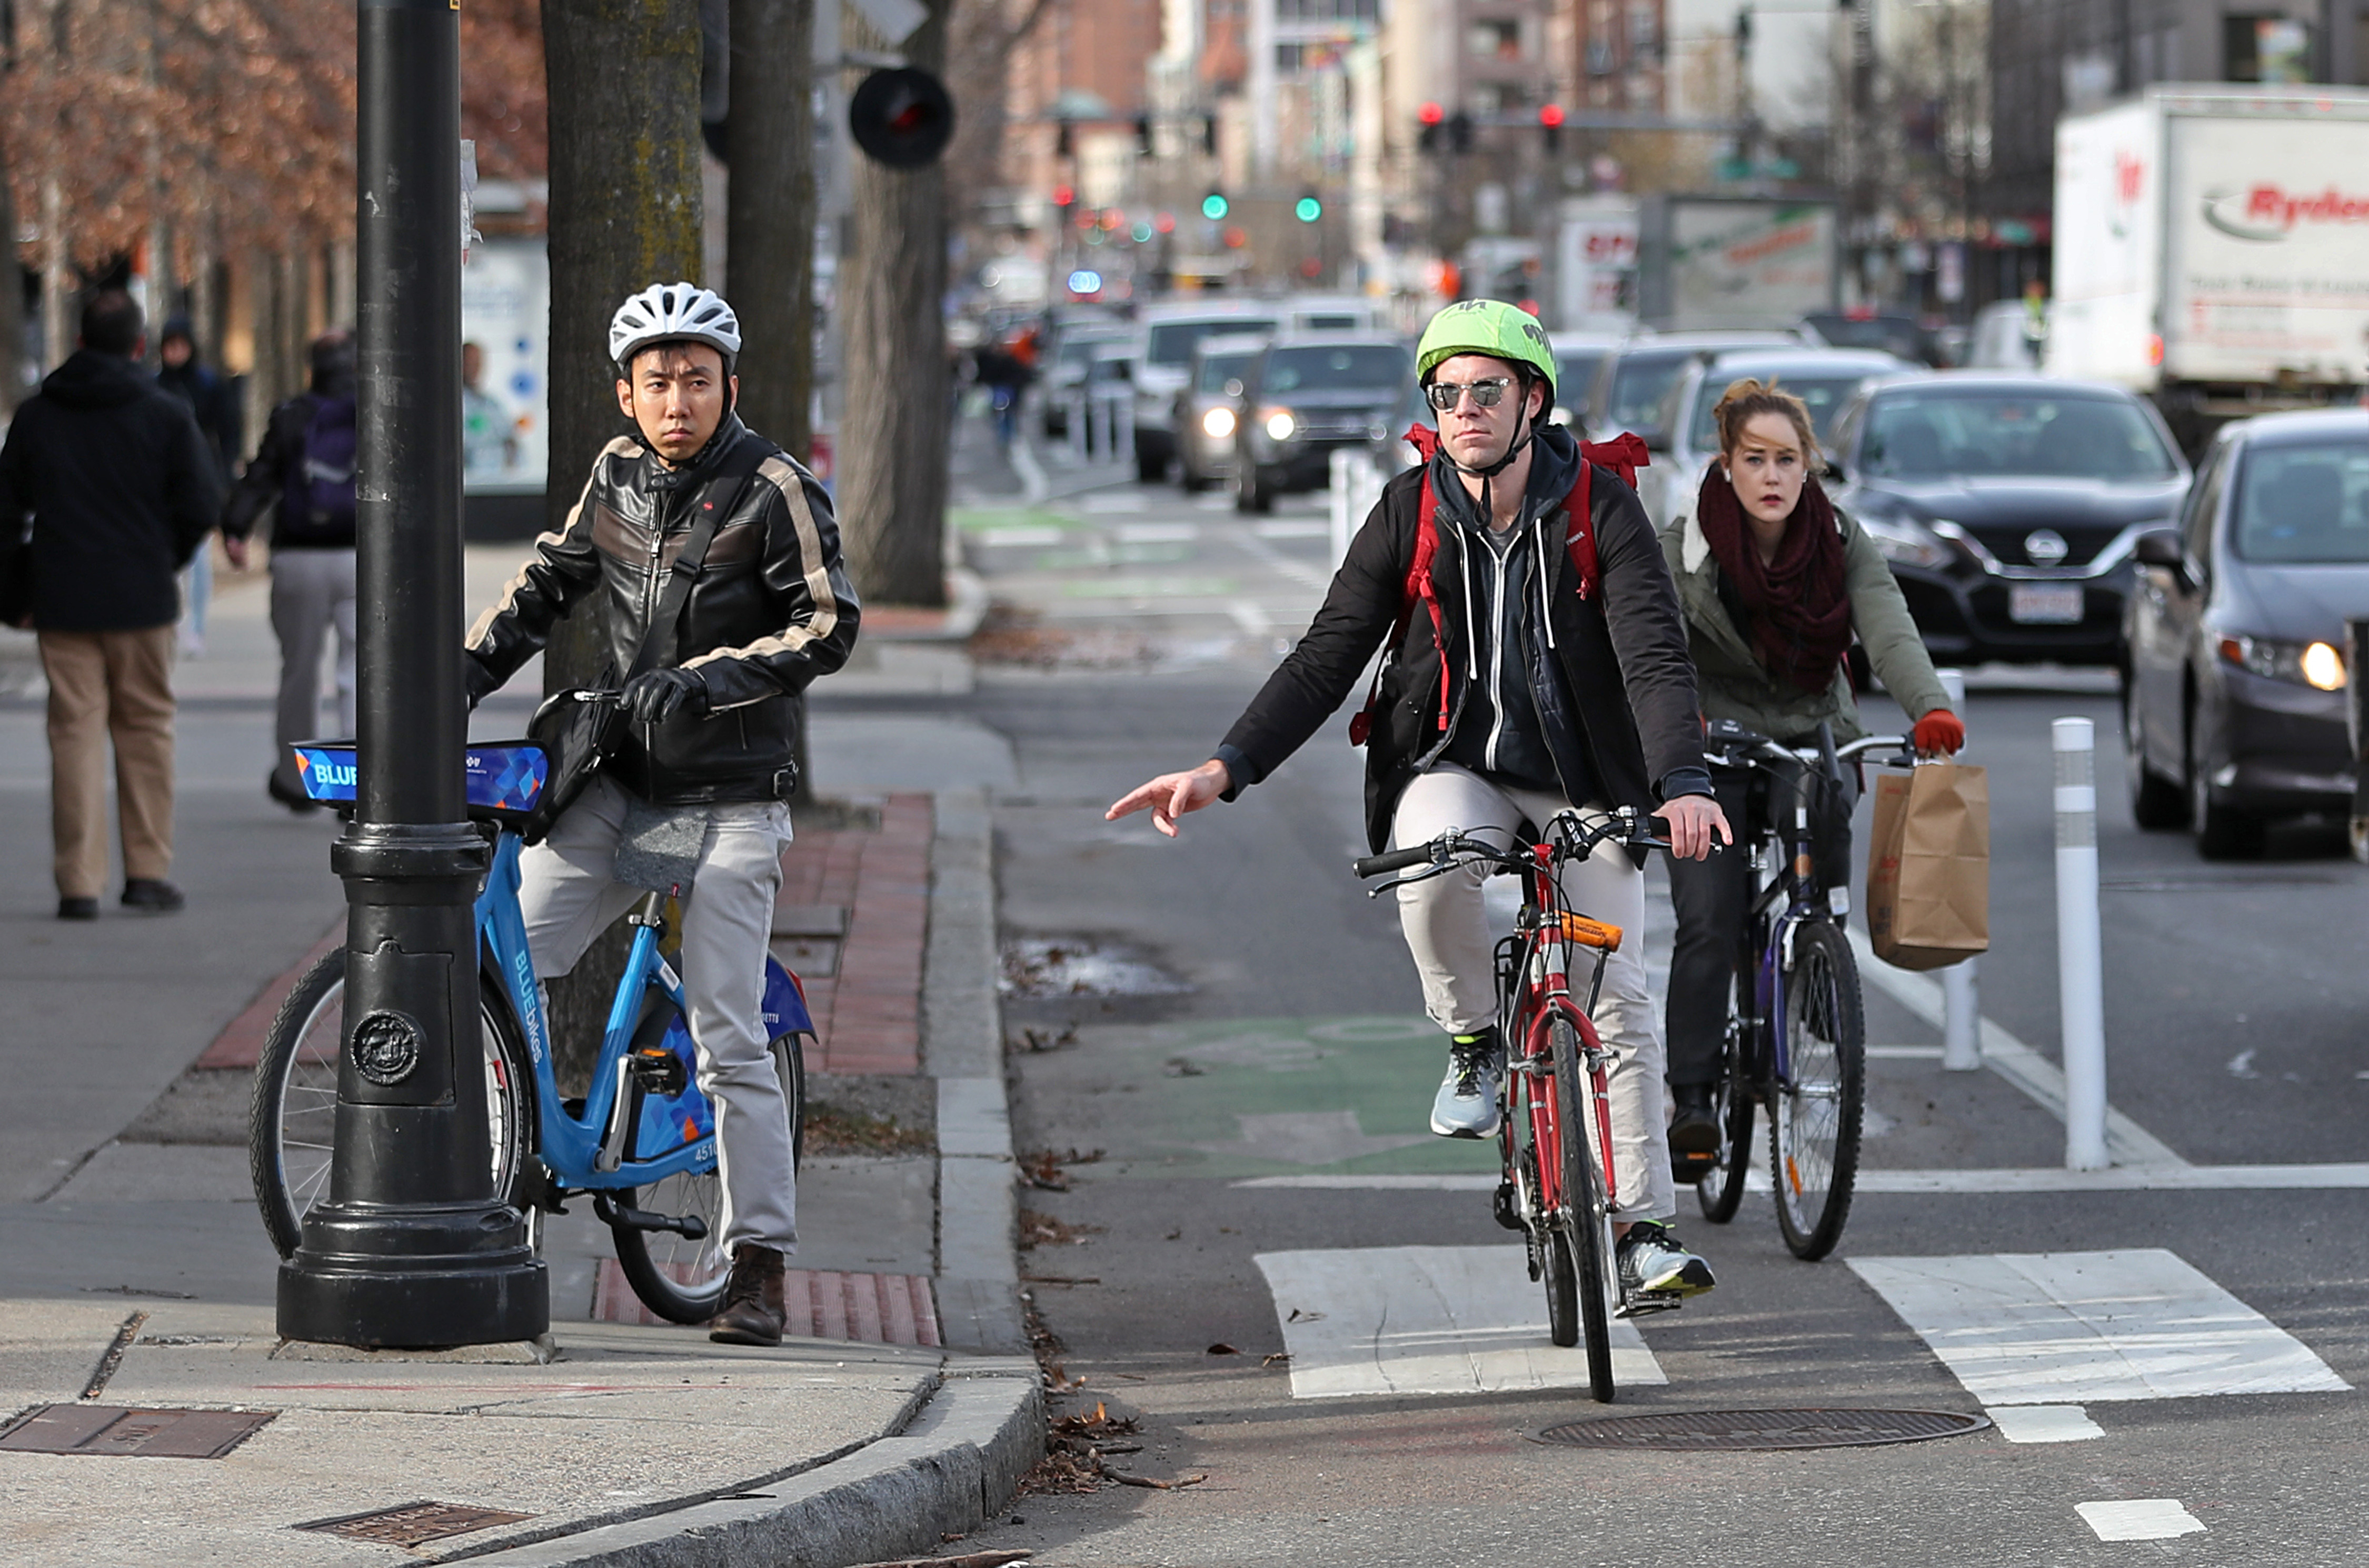 Cambridge bike-network ordinance first of its kind nationwide